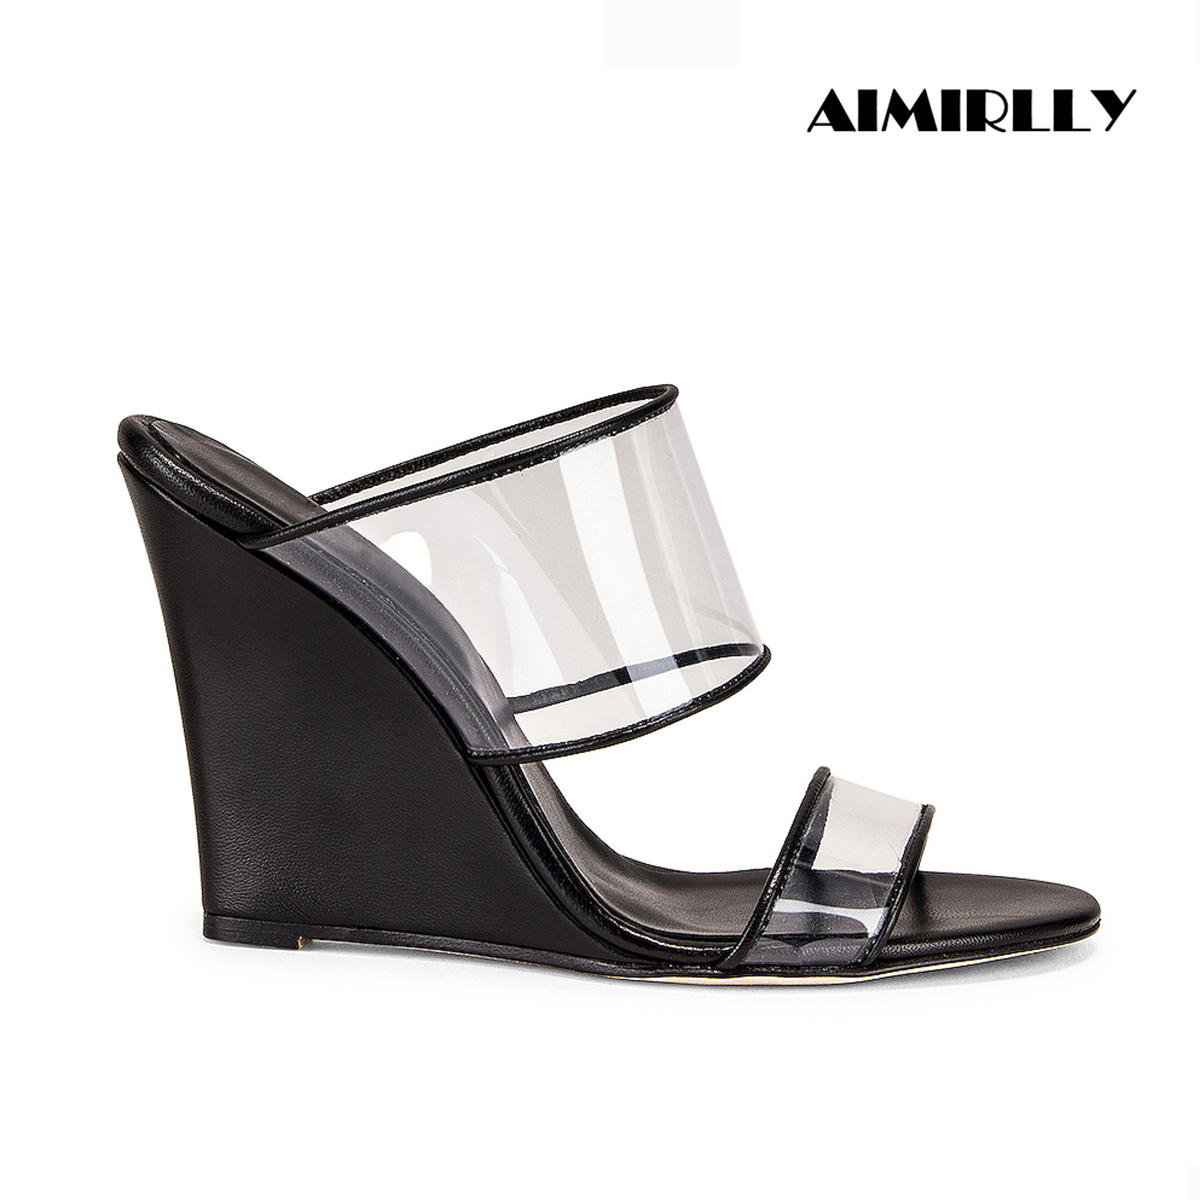 Aimirlly Wedges Heels Slippers Straps Sandals Transparent Women Shoes Comfortable Summer